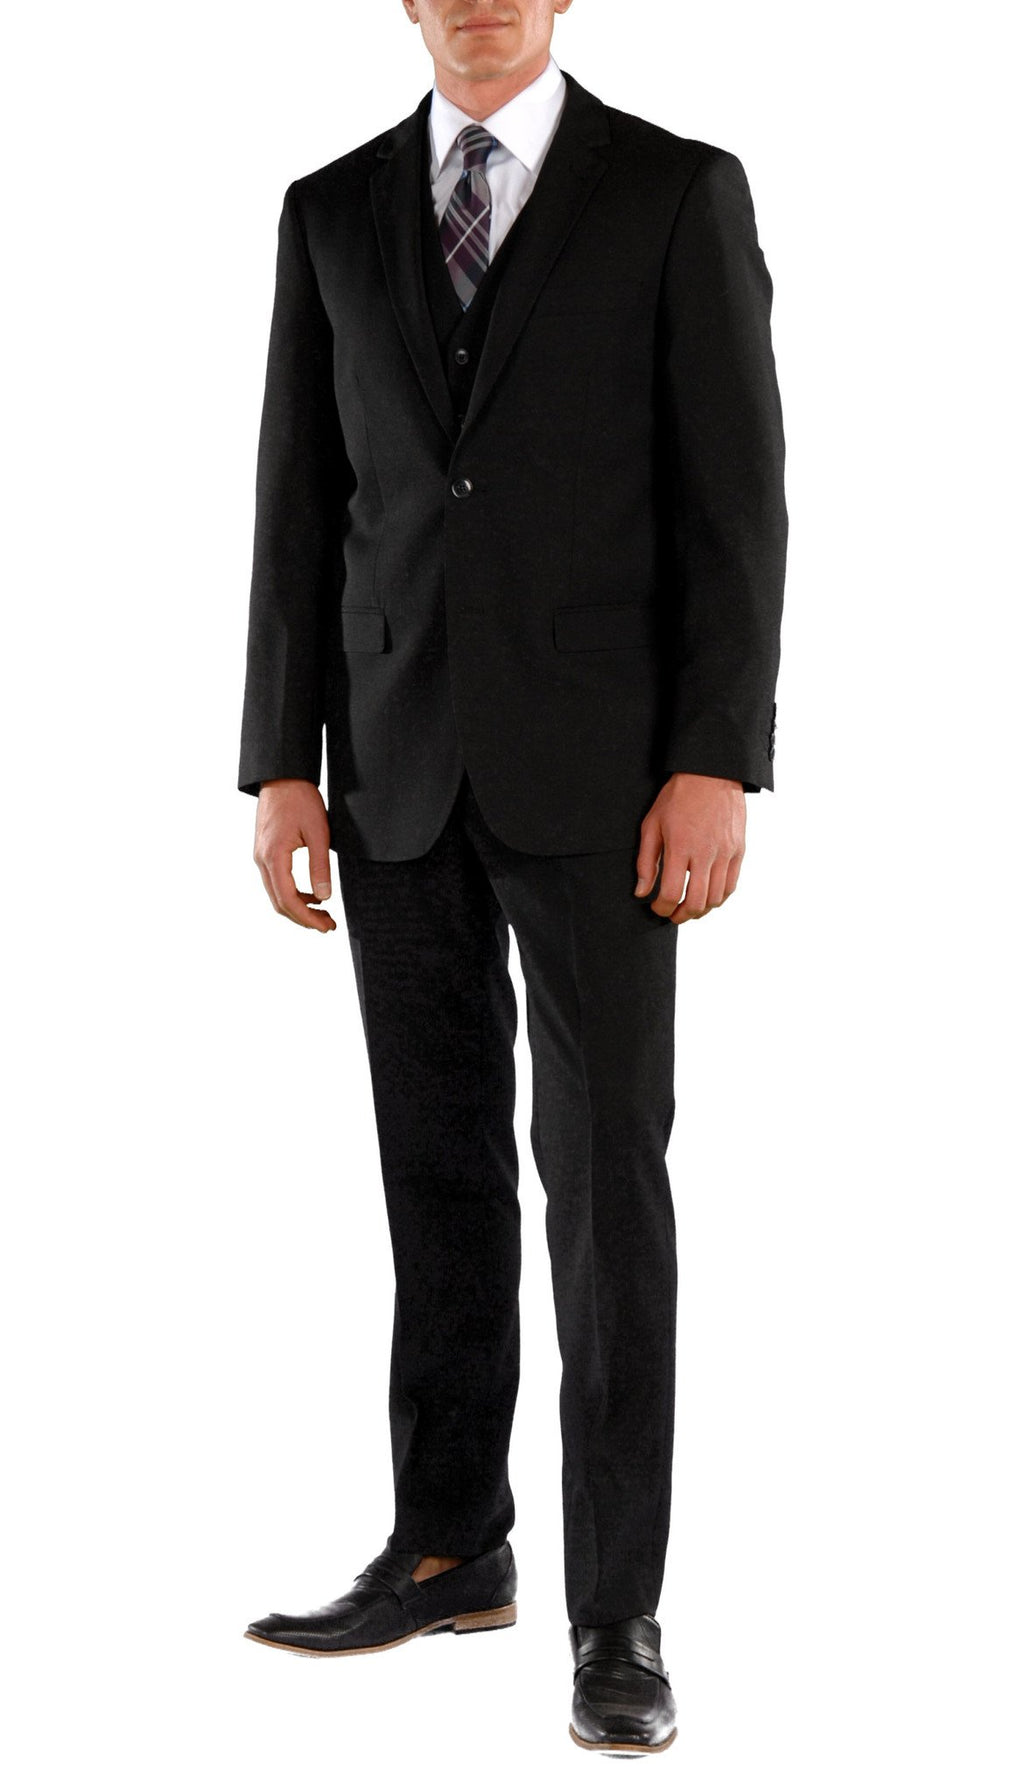 Black Slim Fit Suit  - 3PC - JAX - Giorgio's Menswear